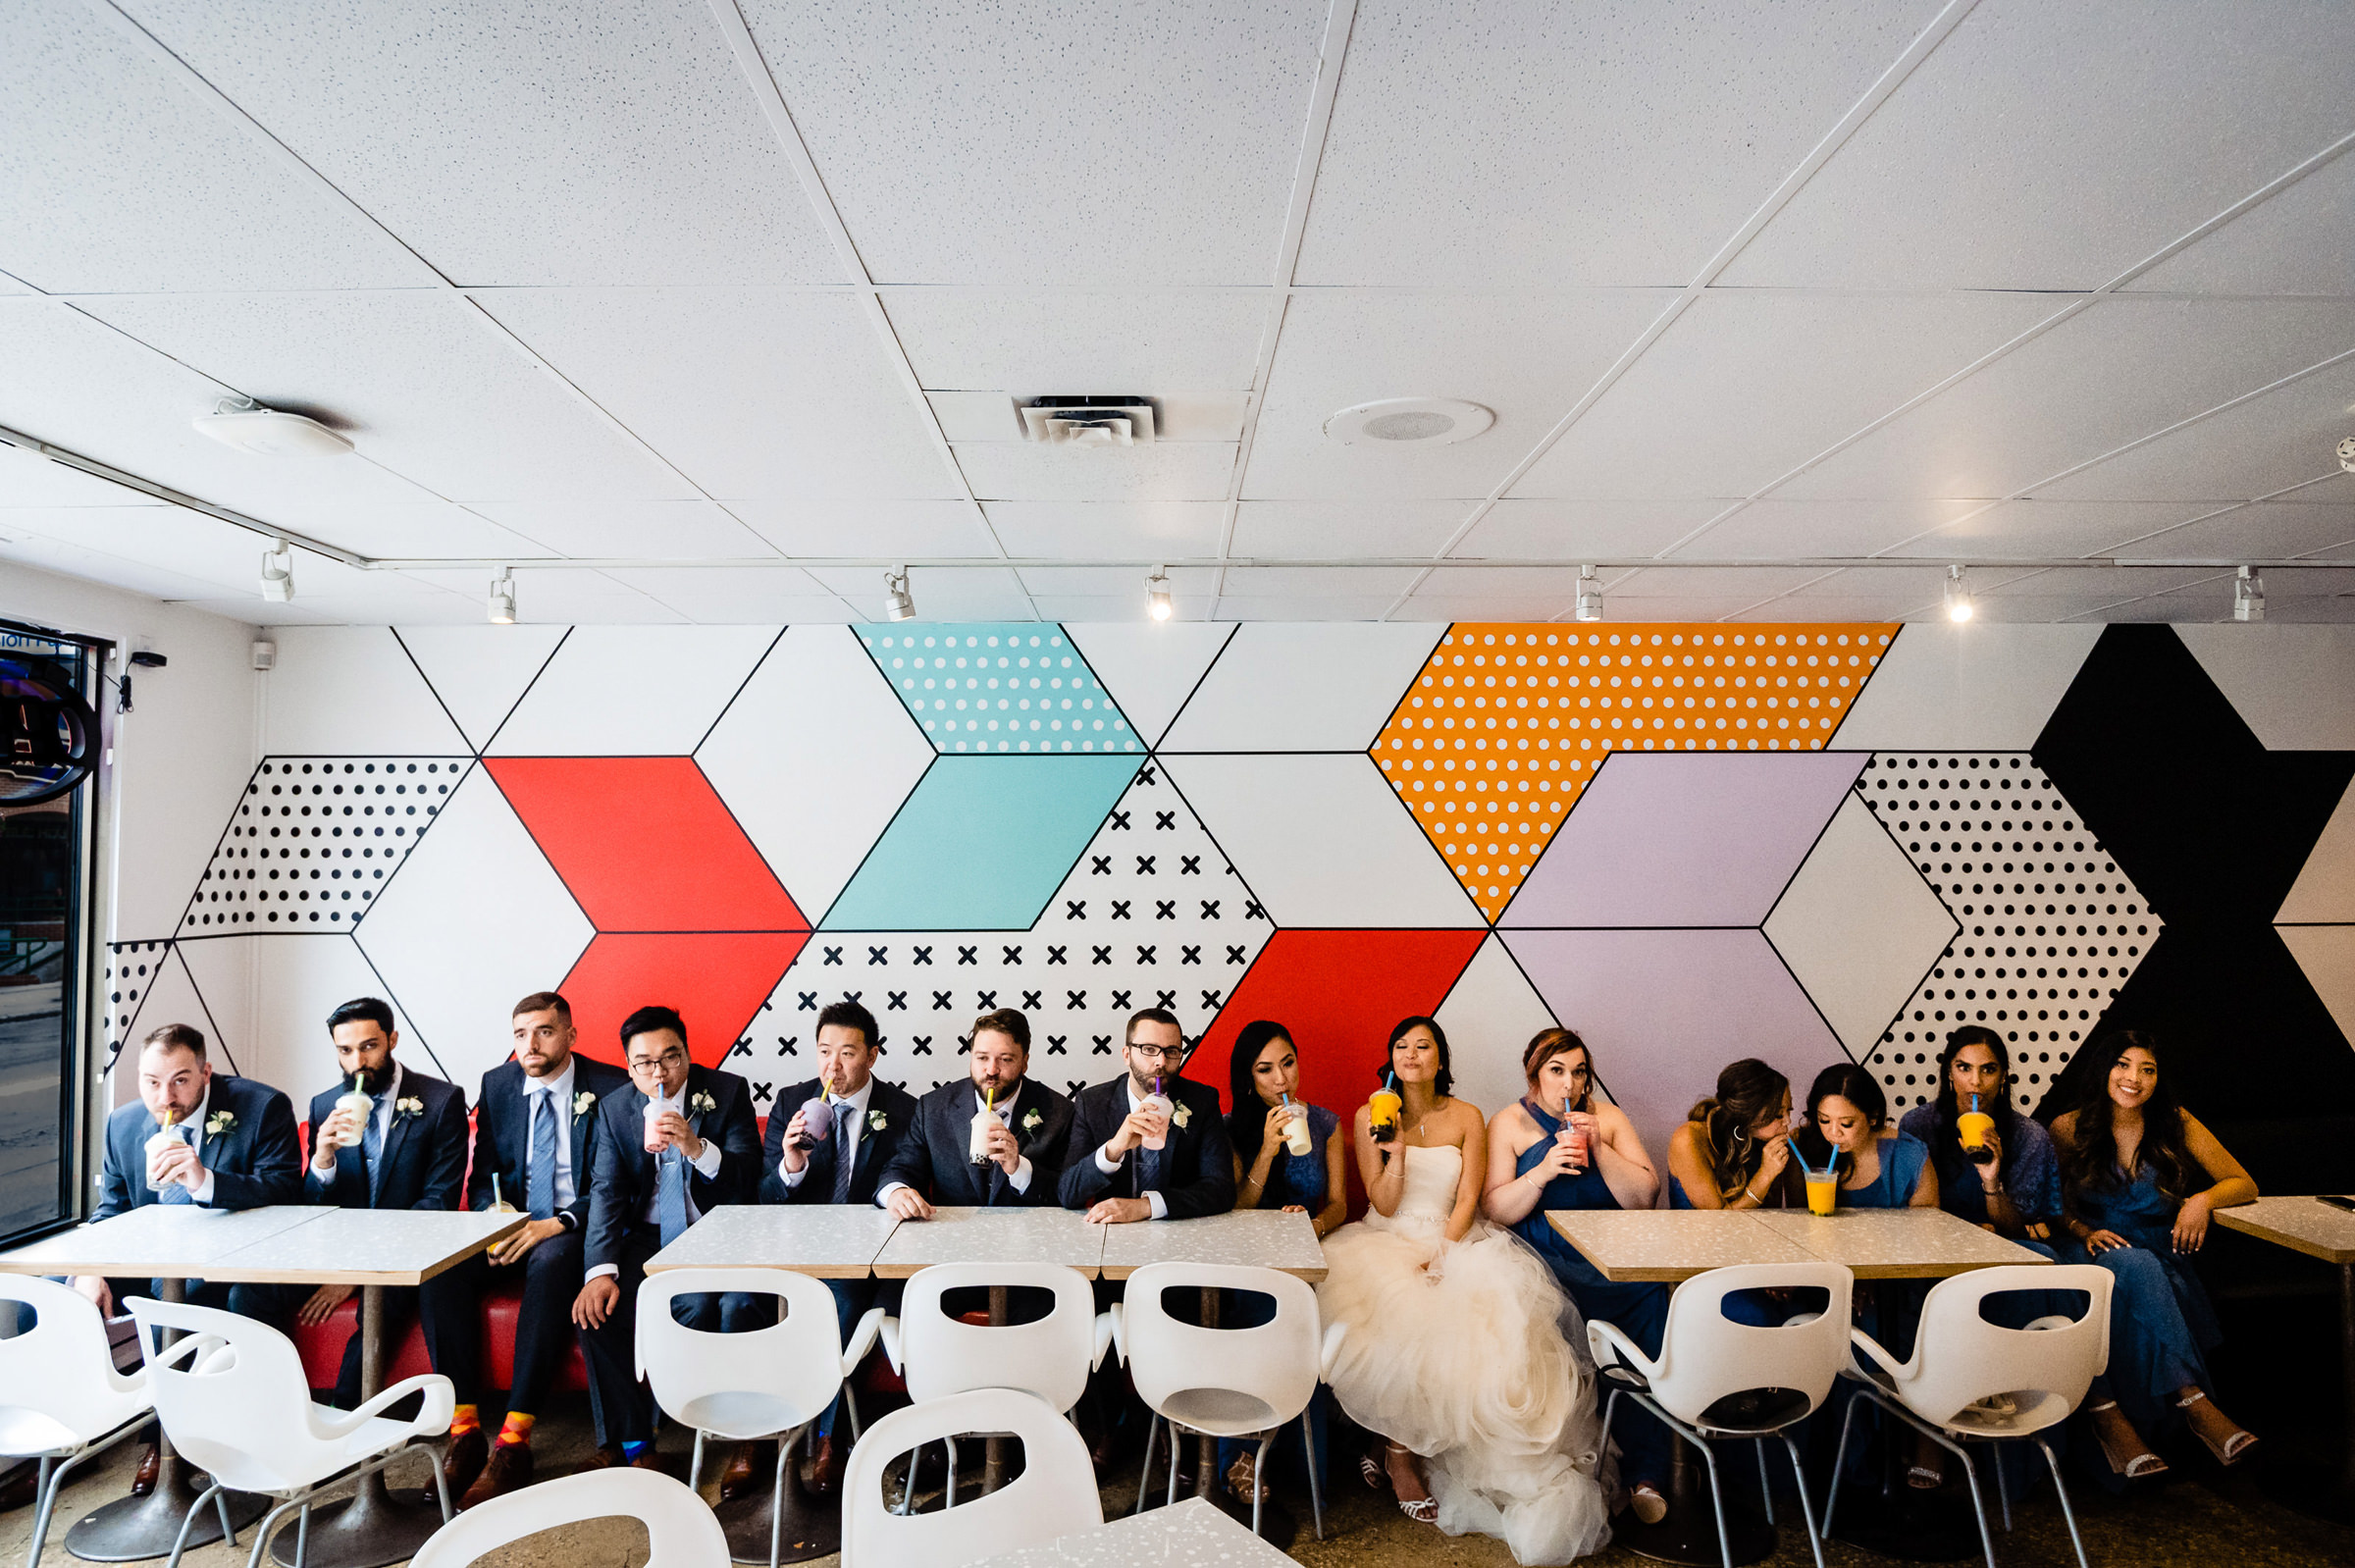 Bridal party at cafe lined up against pop art wall - photo by Moore Photography